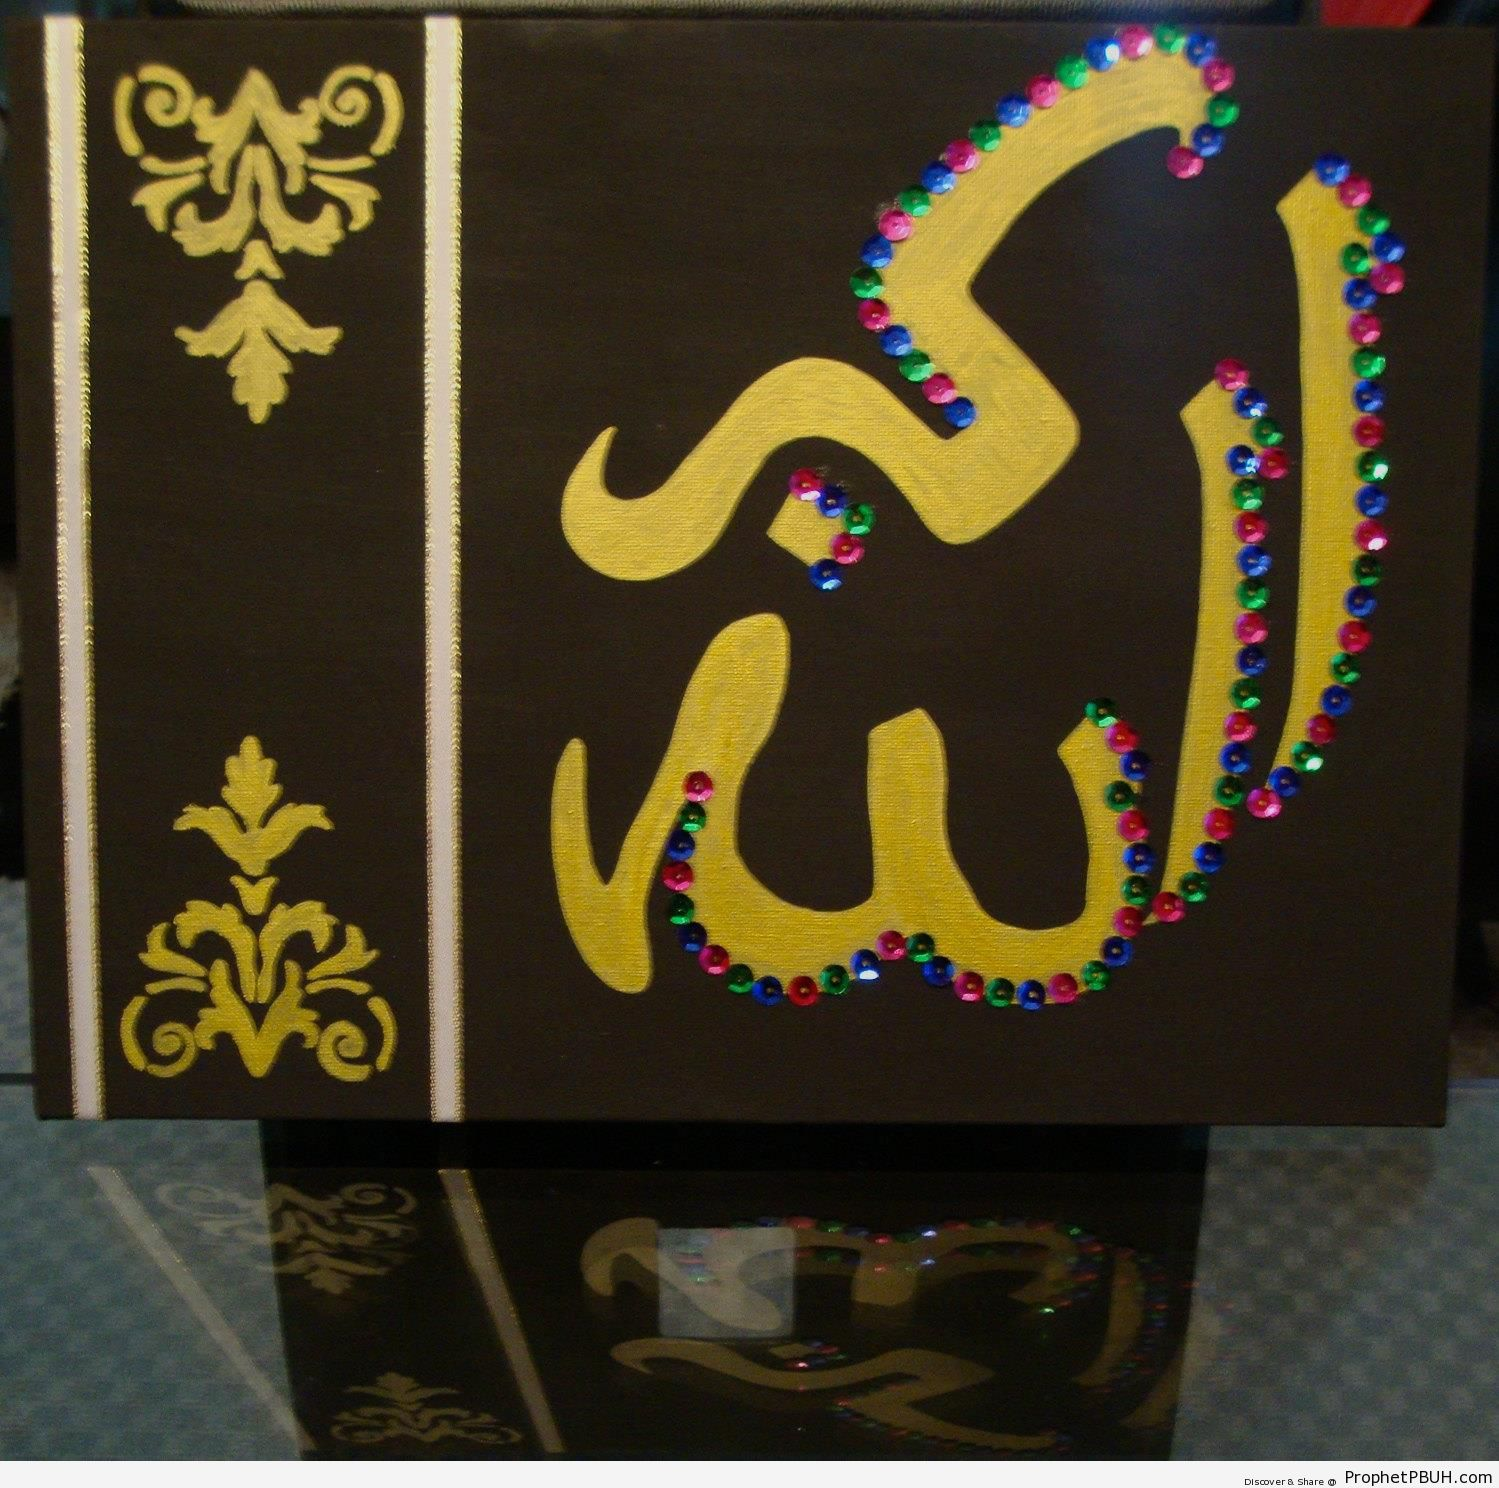 Embellished Allahu Akbar (-God is Great-) in Acrylic Paint - Allahu Akbar Calligraphy and Typography